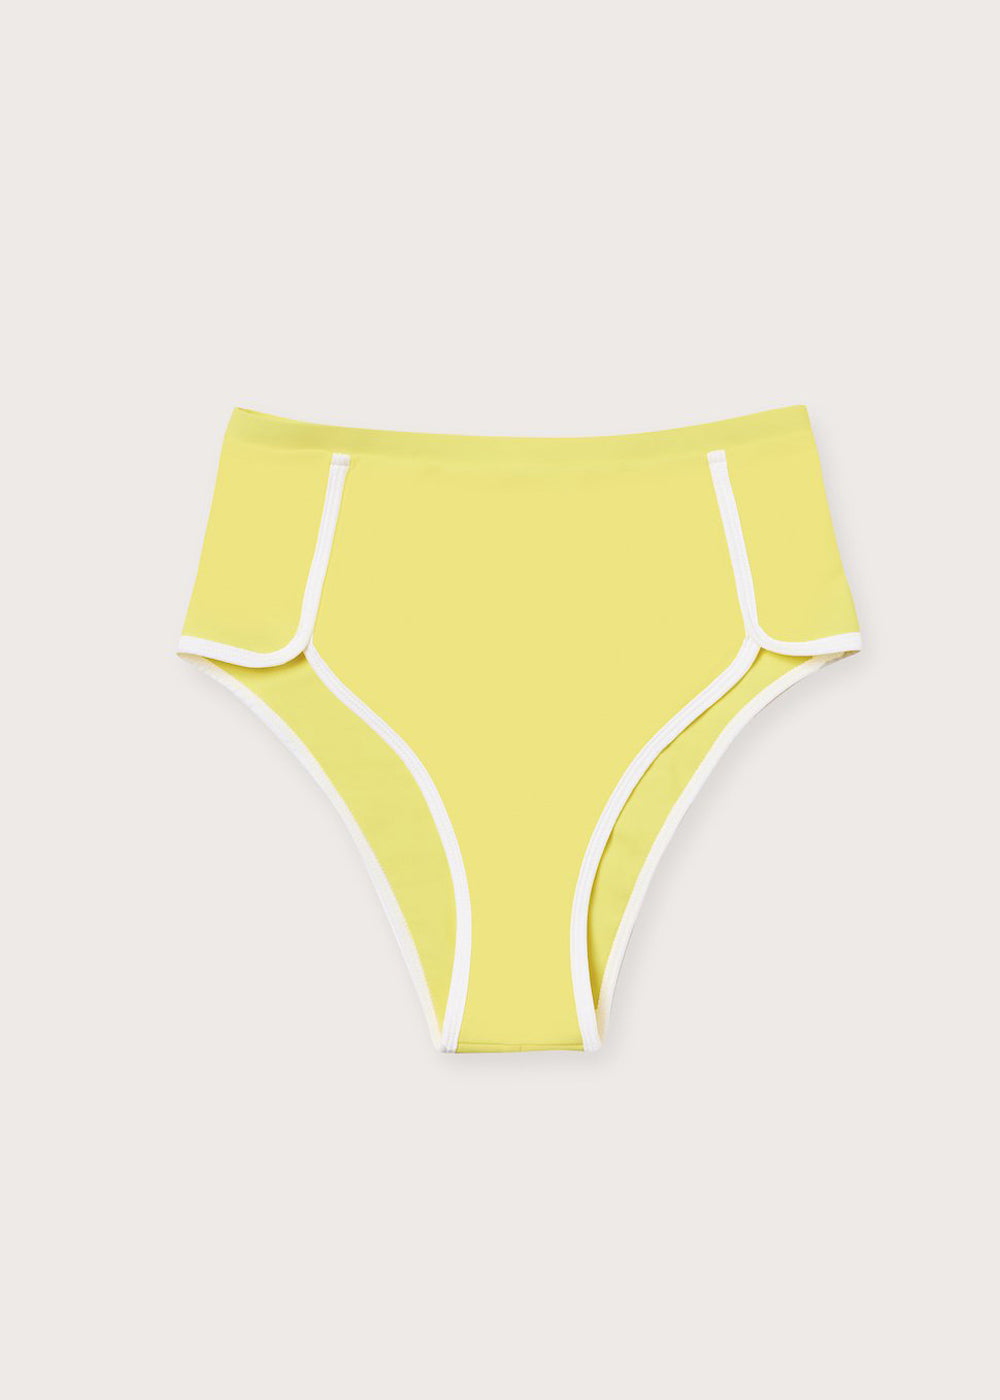 Surfrider Swim Bottom - Lemon - cara cara